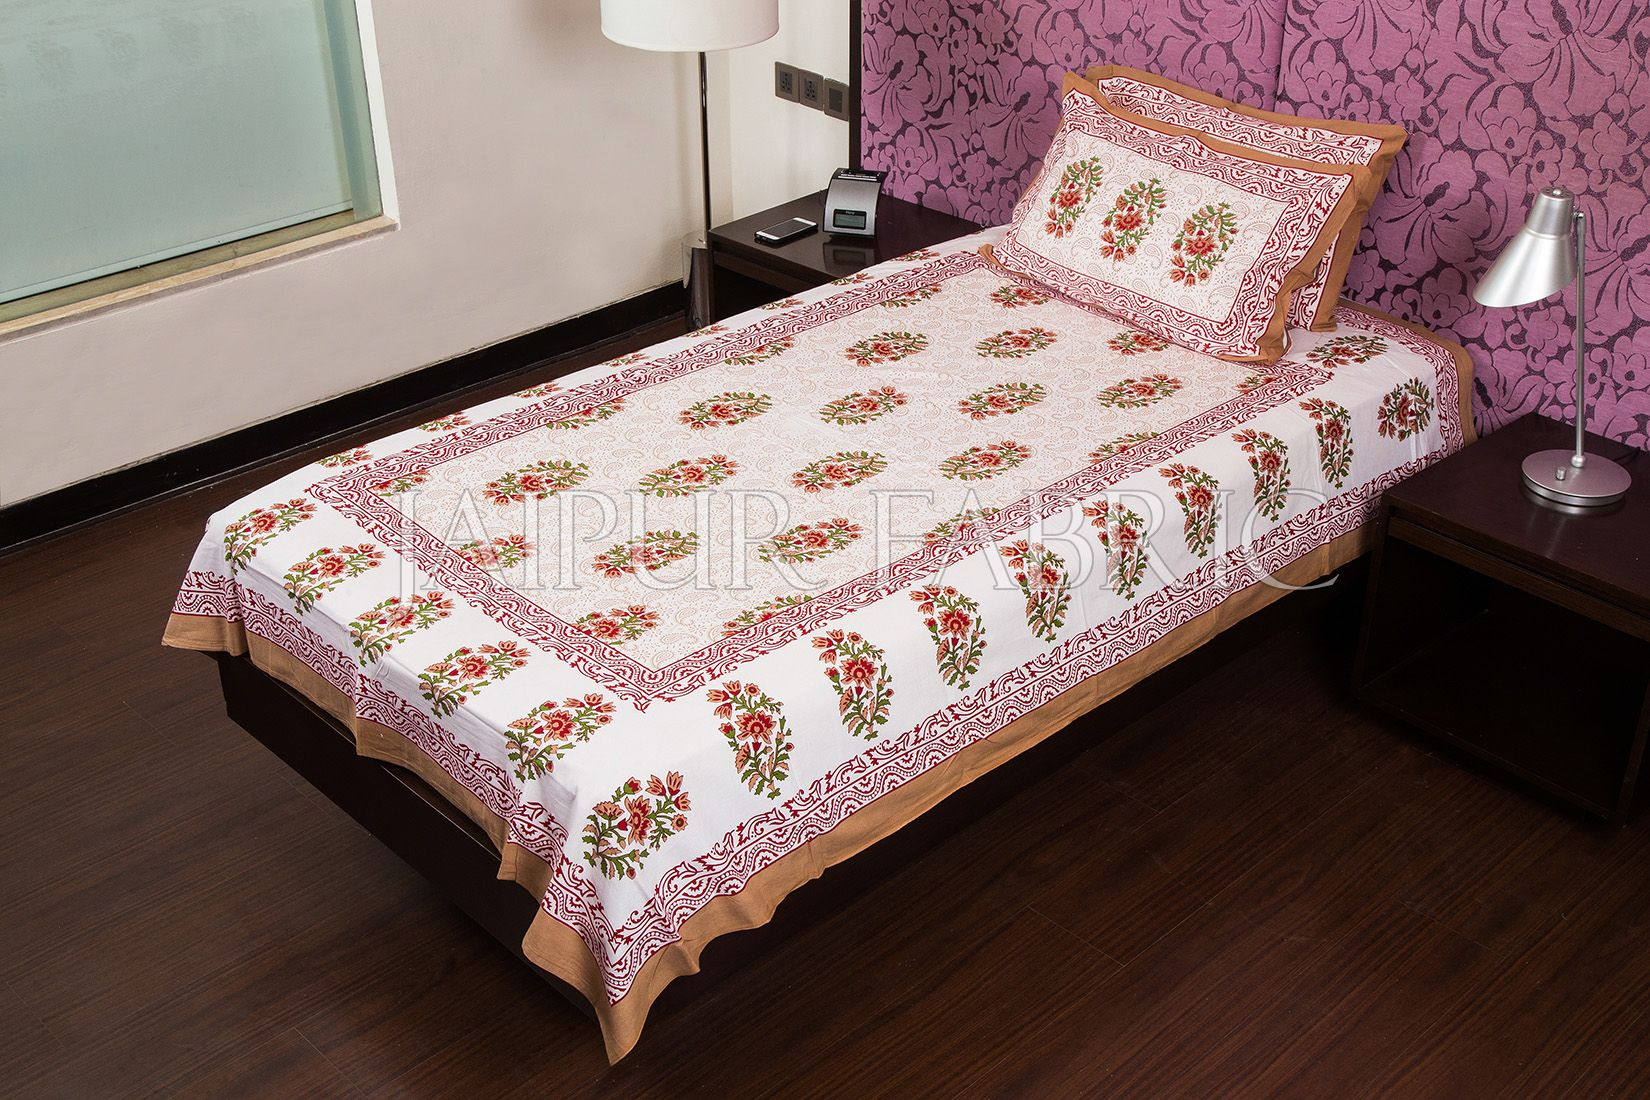 White Base Brown Floral Print Cotton Single Bed Sheet